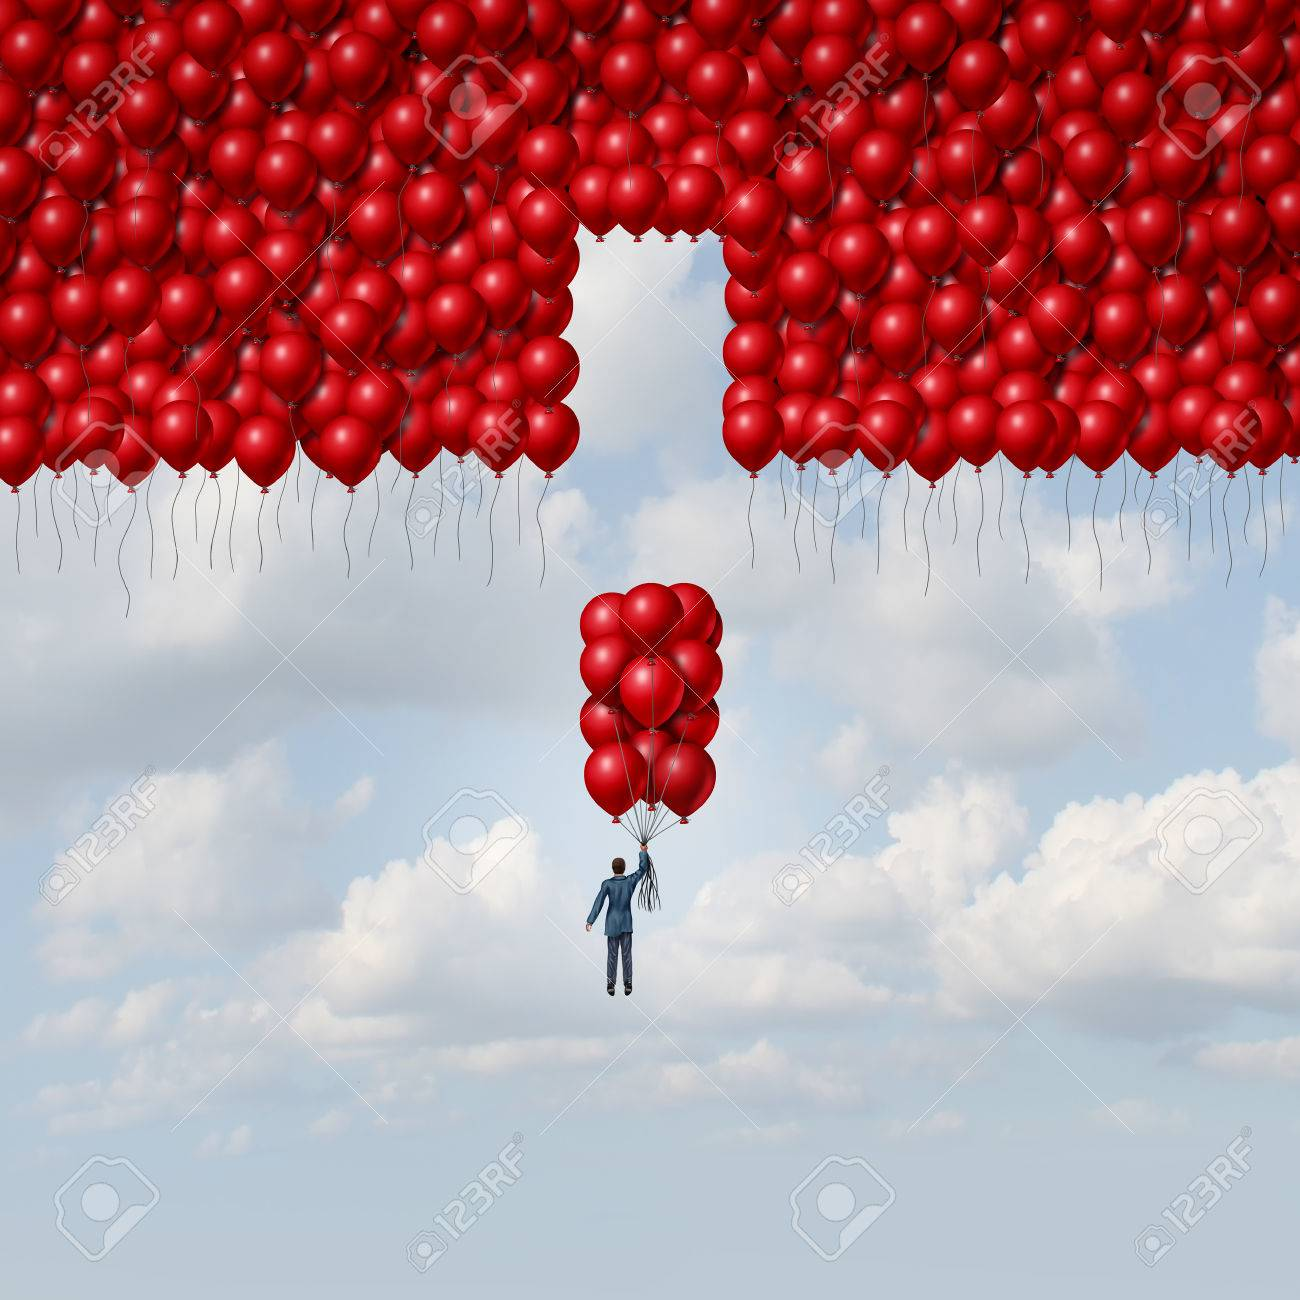 Complete solution business concept as a businessman with a group of balloons as a missing part of a larger organization as a concept for integration and a metaphor for assembly with 3D illustration elements. Standard-Bild - 60837162